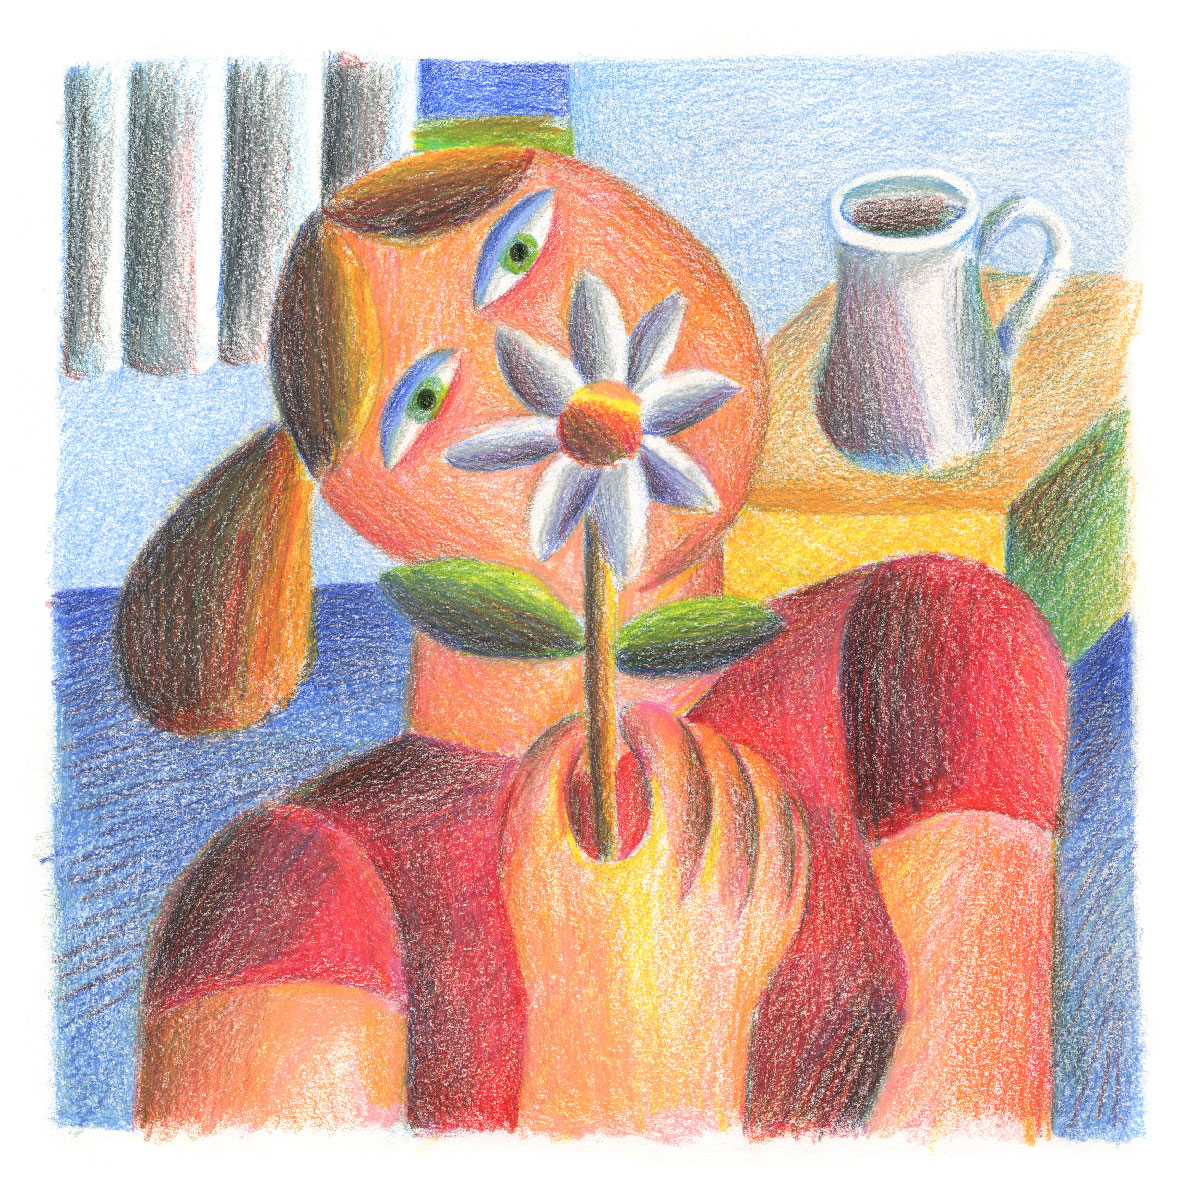 Andy-Rementer,-Flower-Girl,-2020,-colored-pencil-on-paper,-30,5×22,9-cm,-web